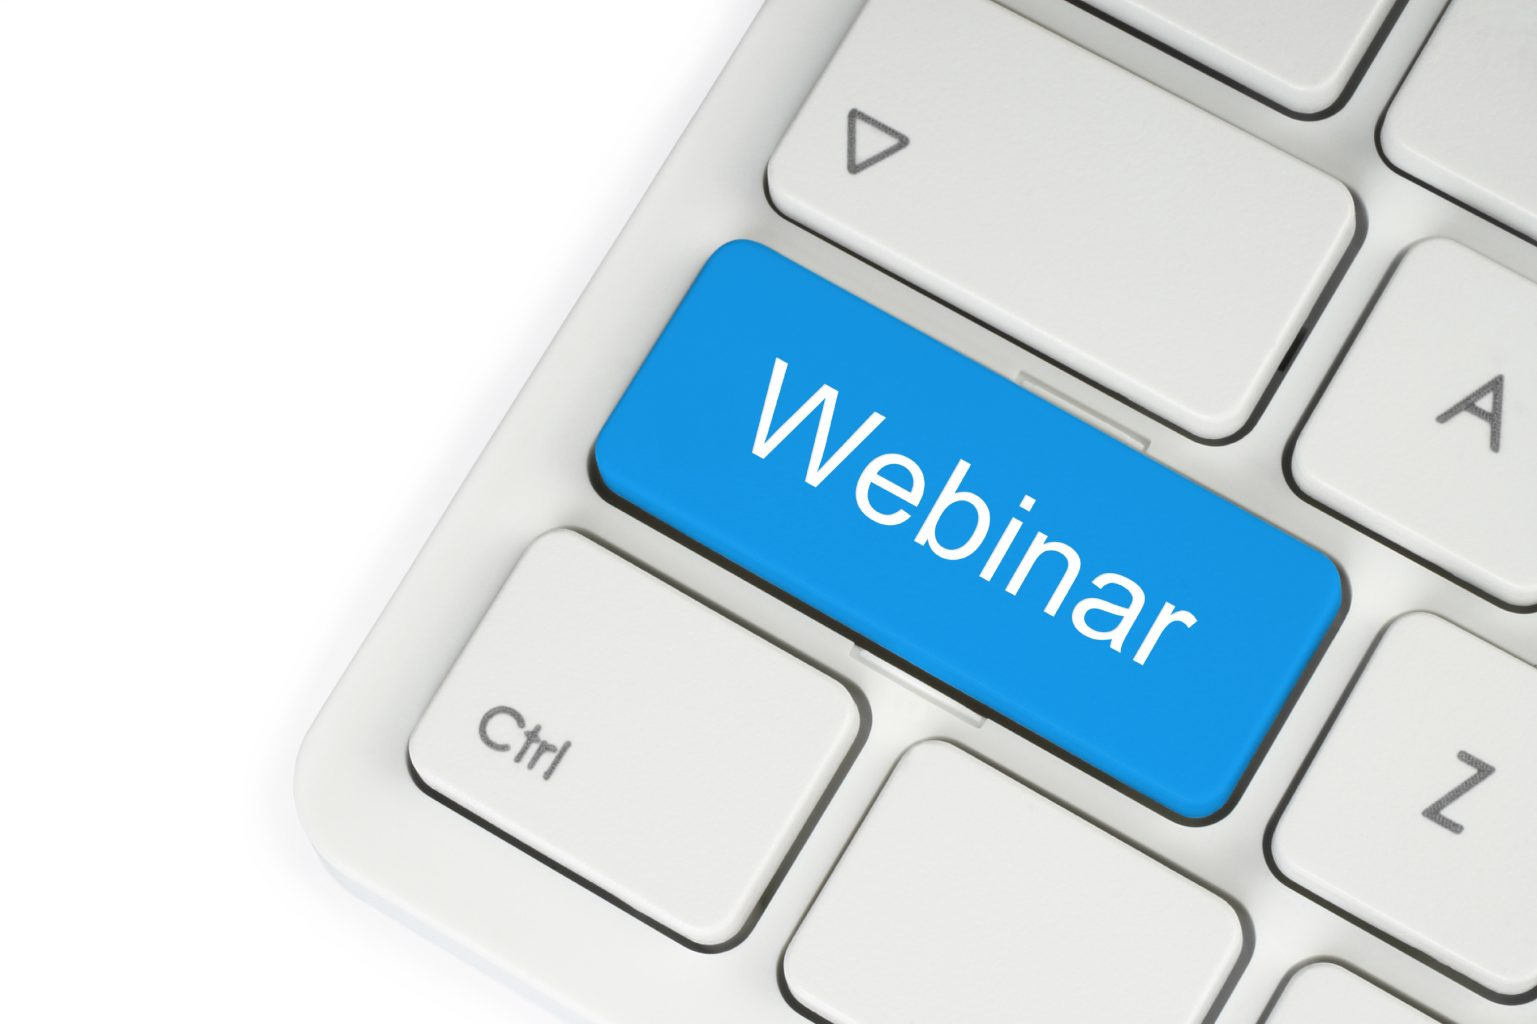 The Power of Webinar: A Great Marketing Tool